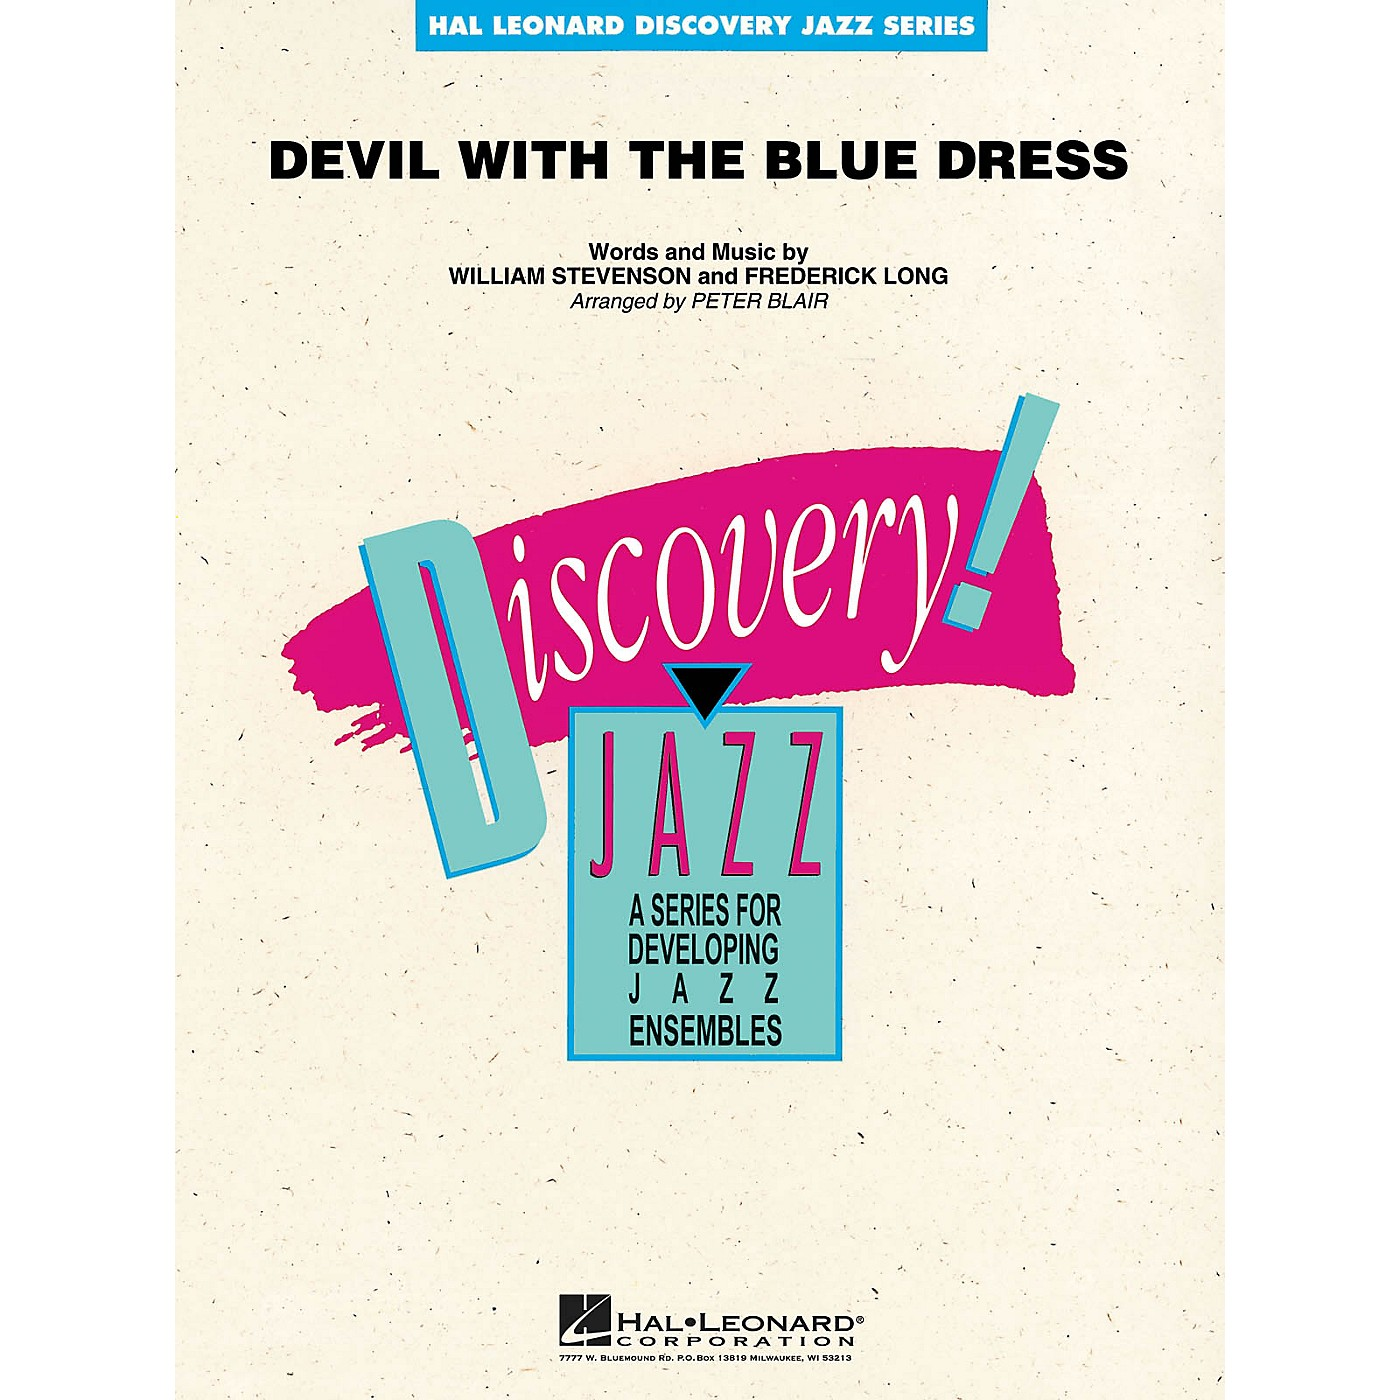 Hal Leonard Devil with the Blue Dress Jazz Band Level 1-2 Arranged by Peter Blair thumbnail